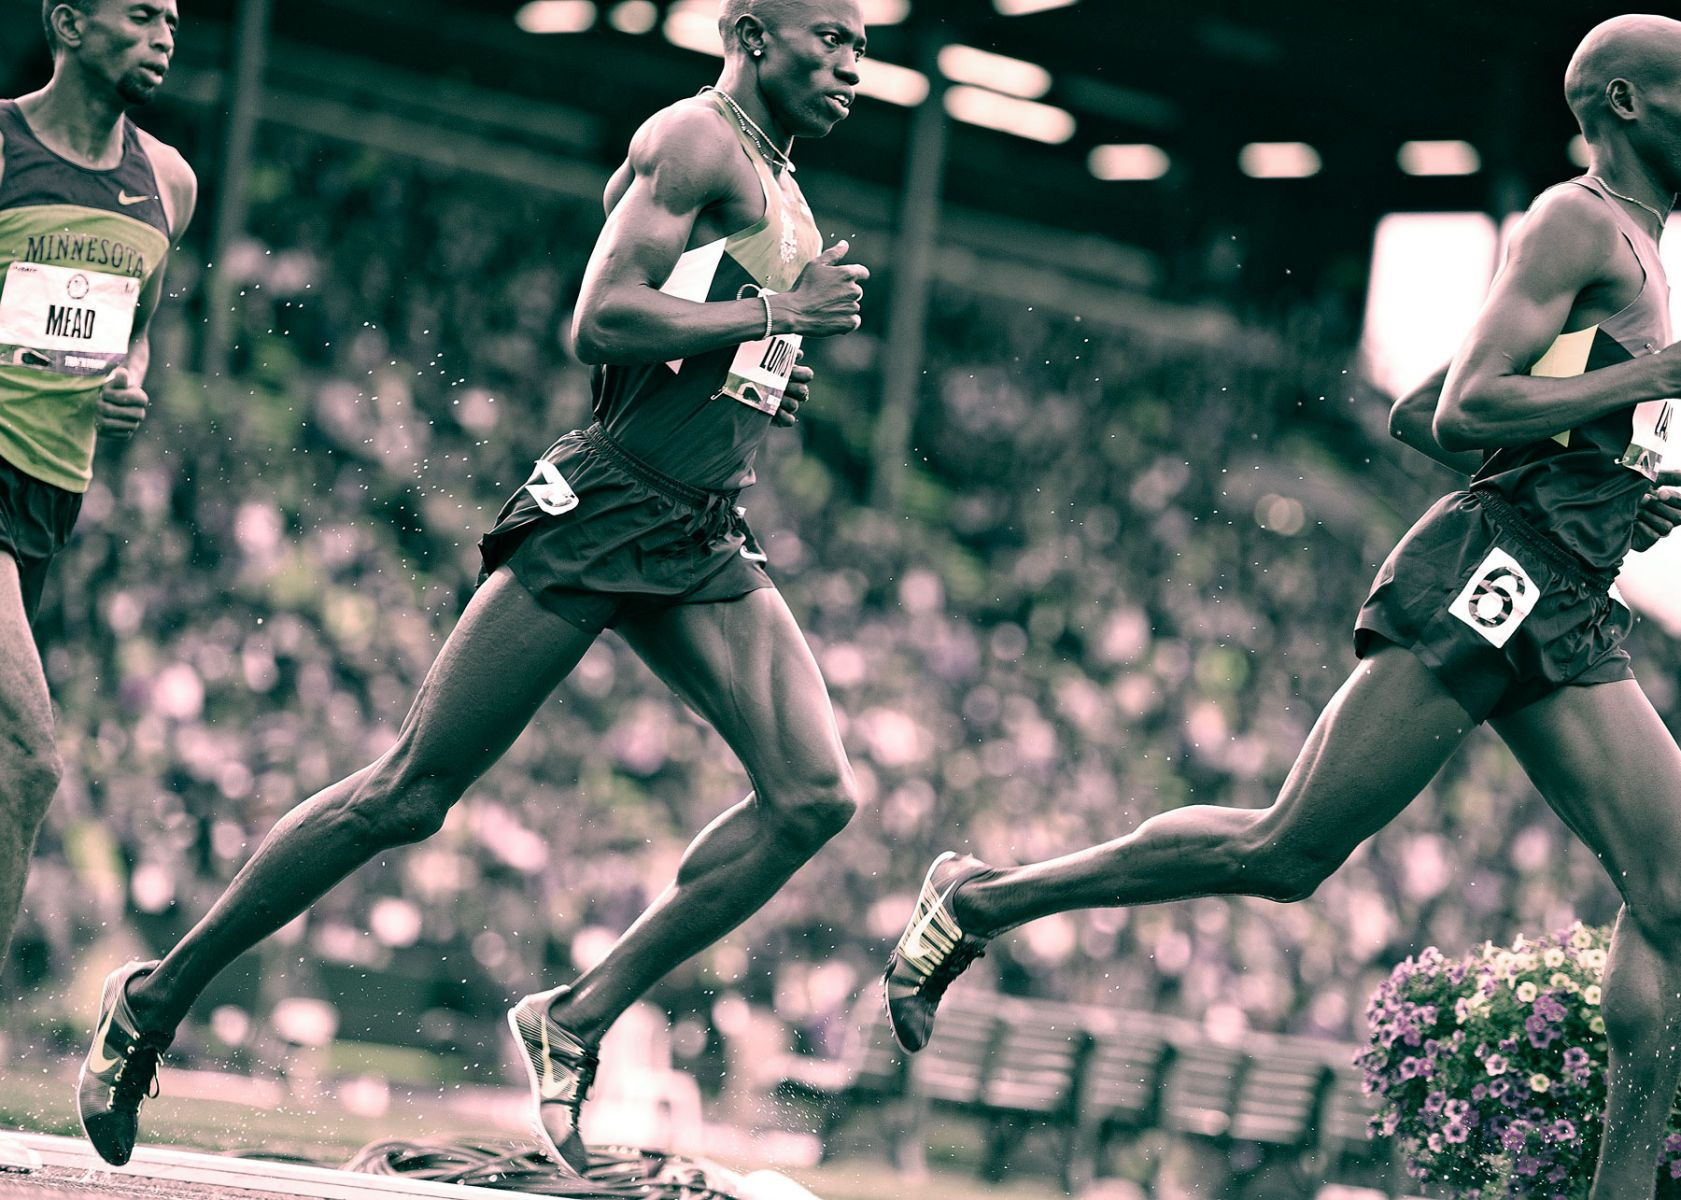 1ustrials2012_eugene_lopez_lomong_5000m_tracka_nd_field_image_jeff_cohen_photography_lb.jpg